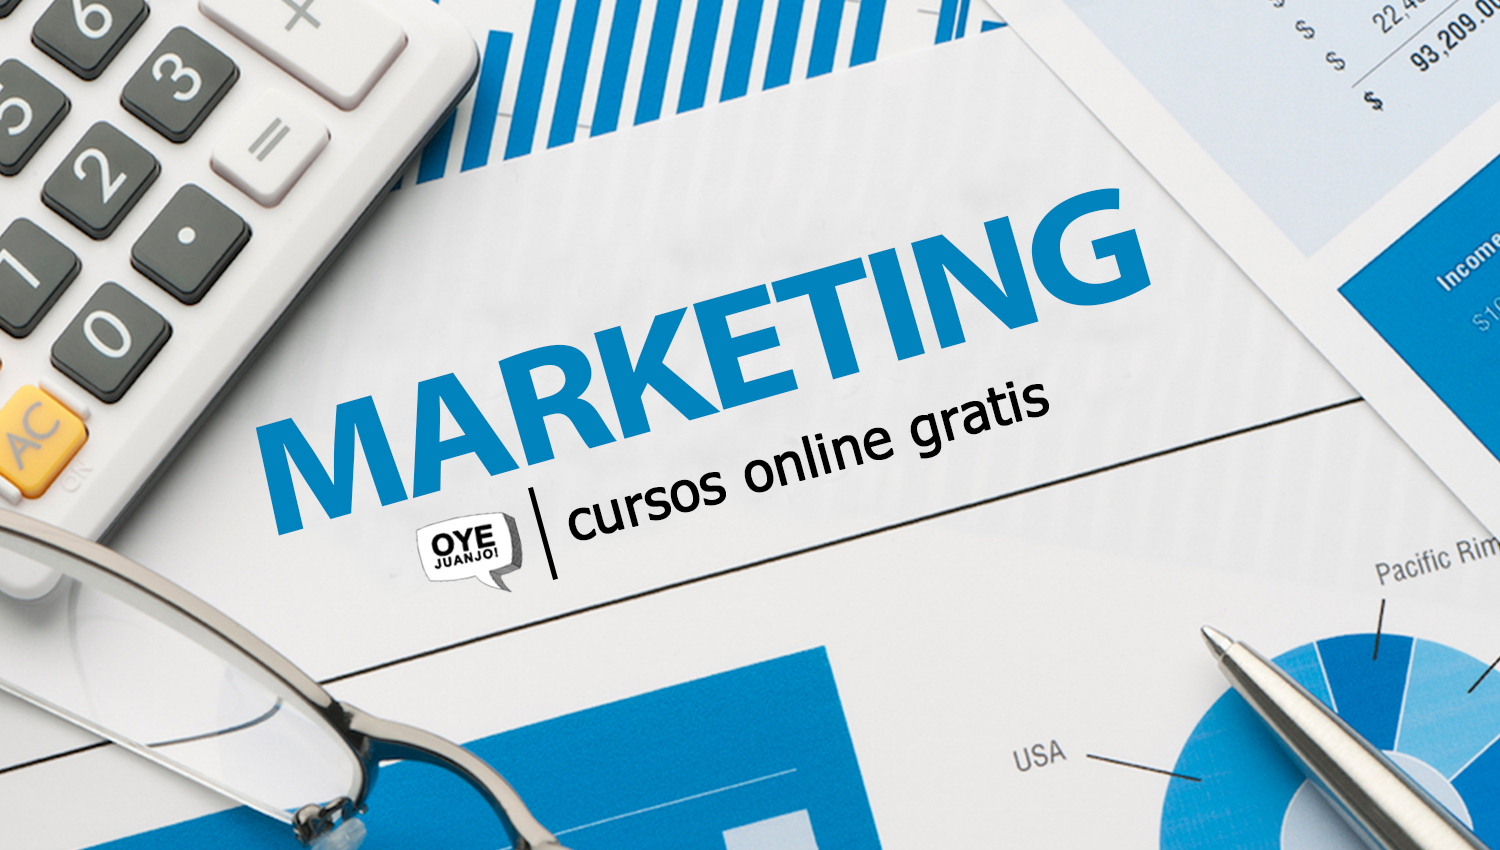 marketing+cursos+online+gratis.jpg